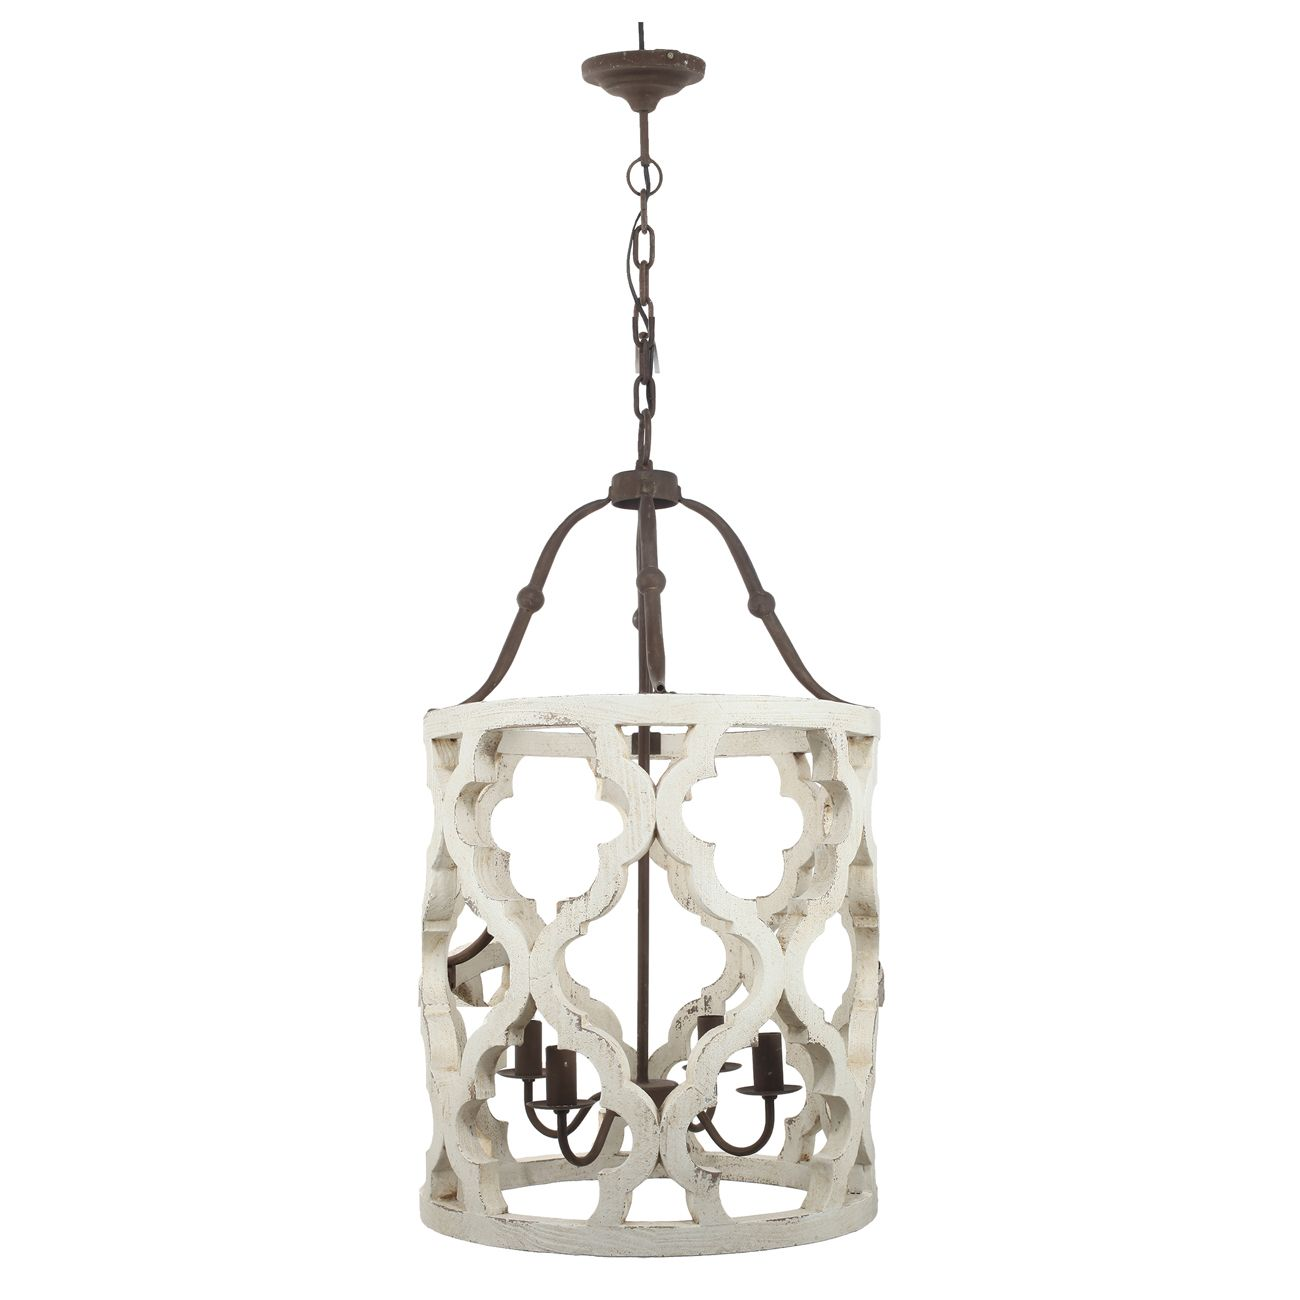 Product Not Found Shabby Chic Lighting Wood Chandelier Wood